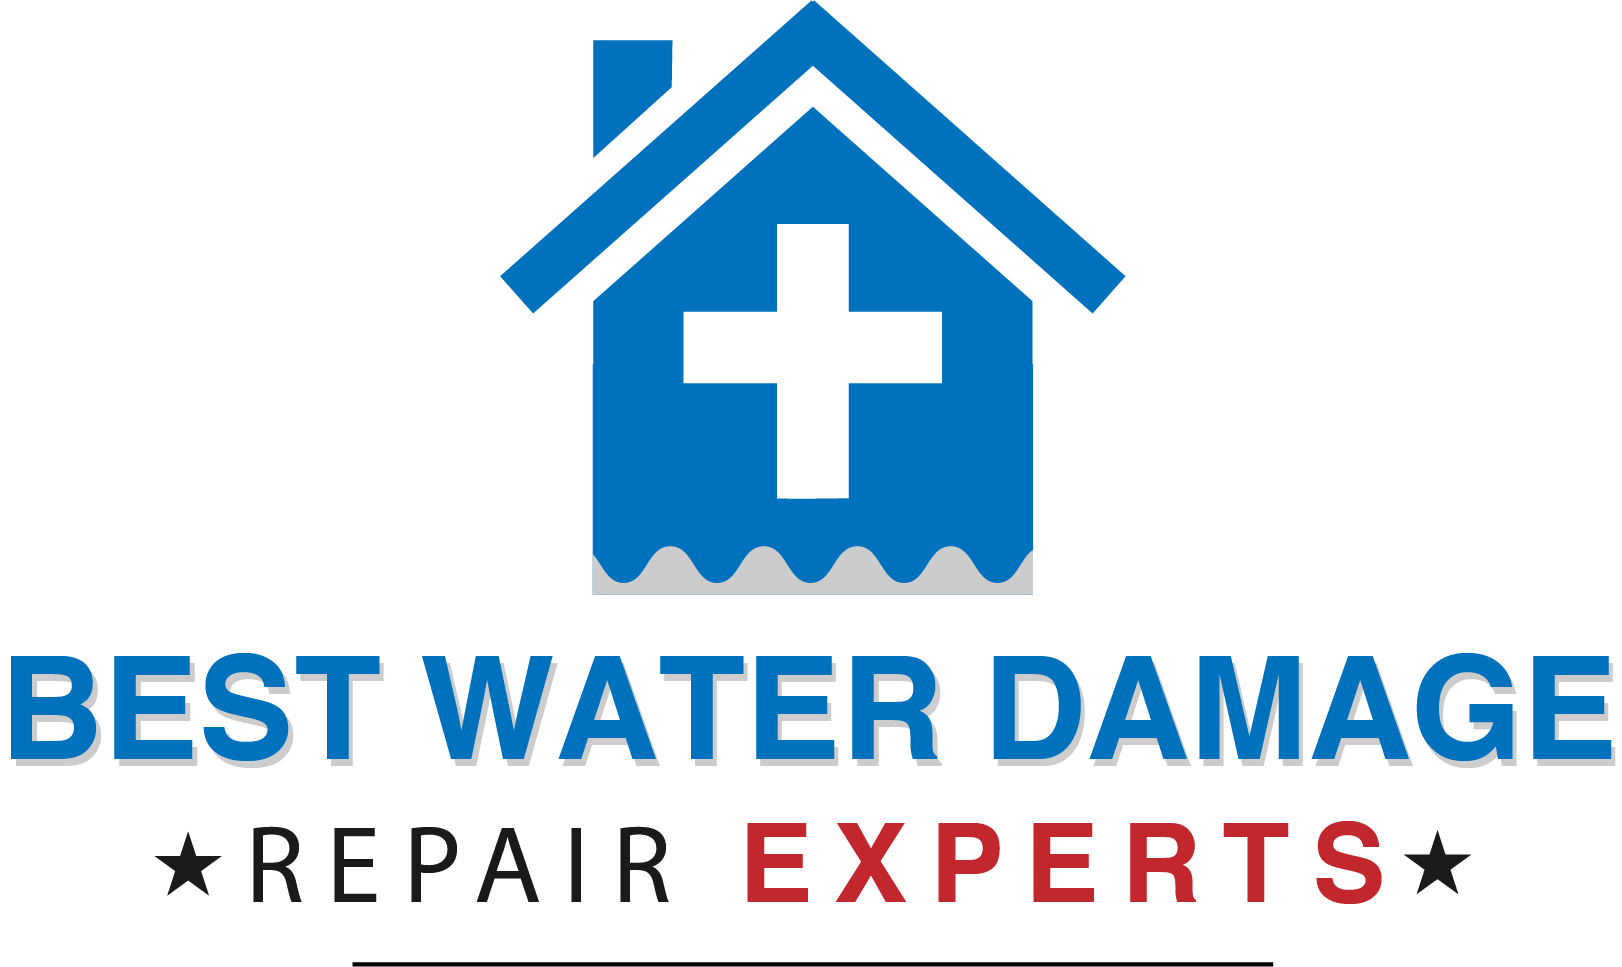 Emergency Water Damage in Henderson provided by a Local Restoration Company